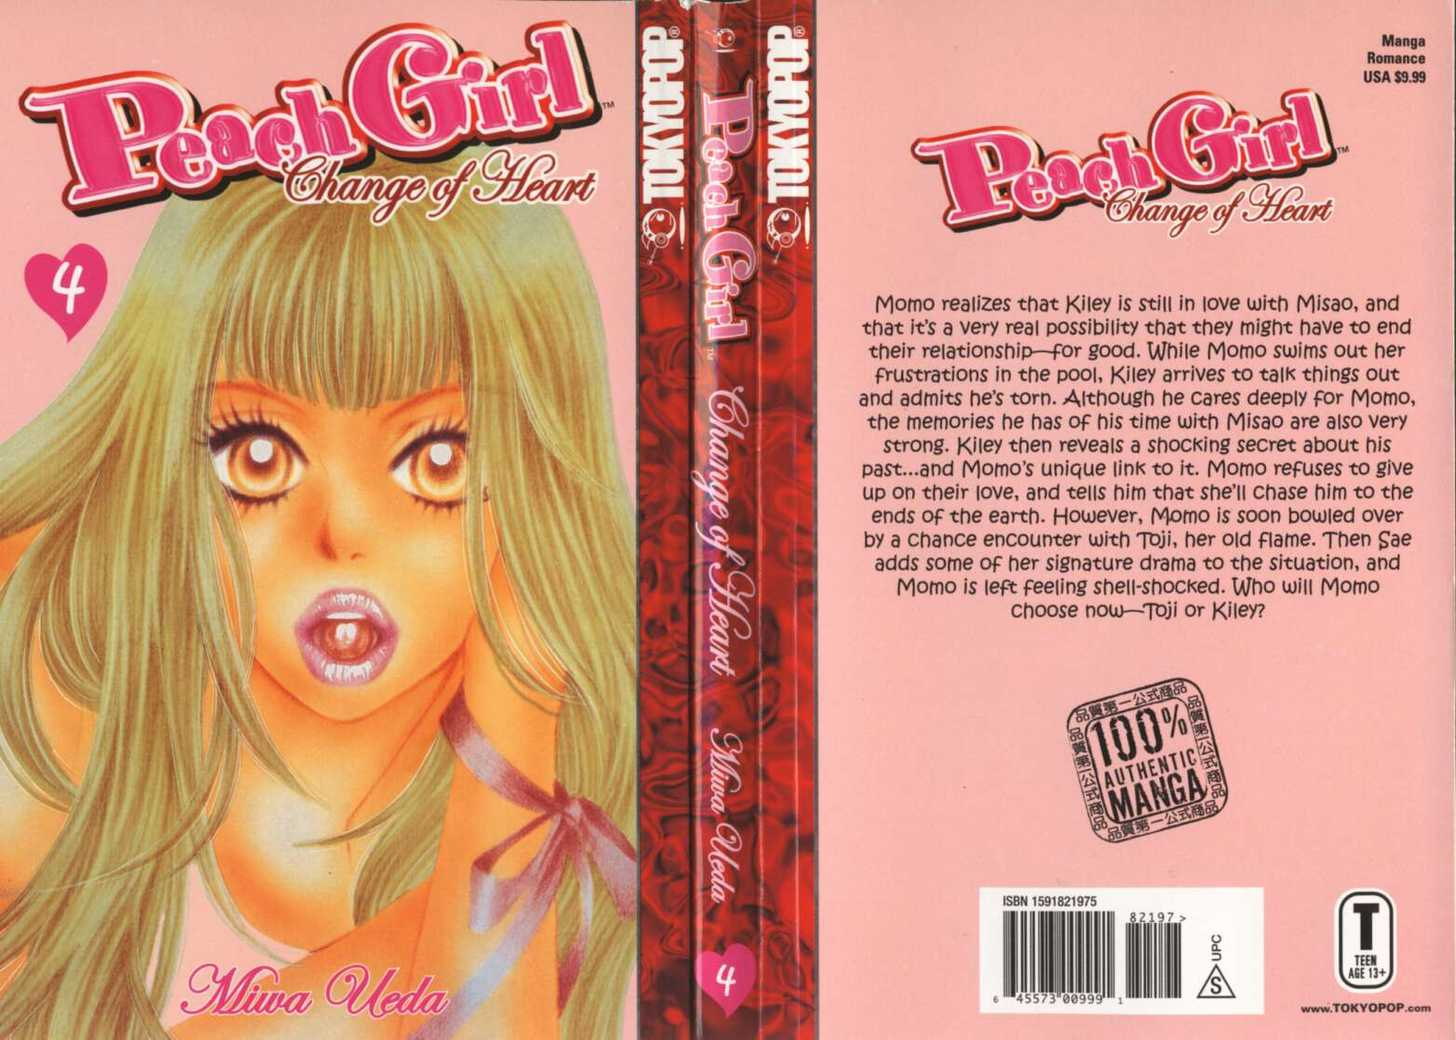 Peach Girl 12 Page 1